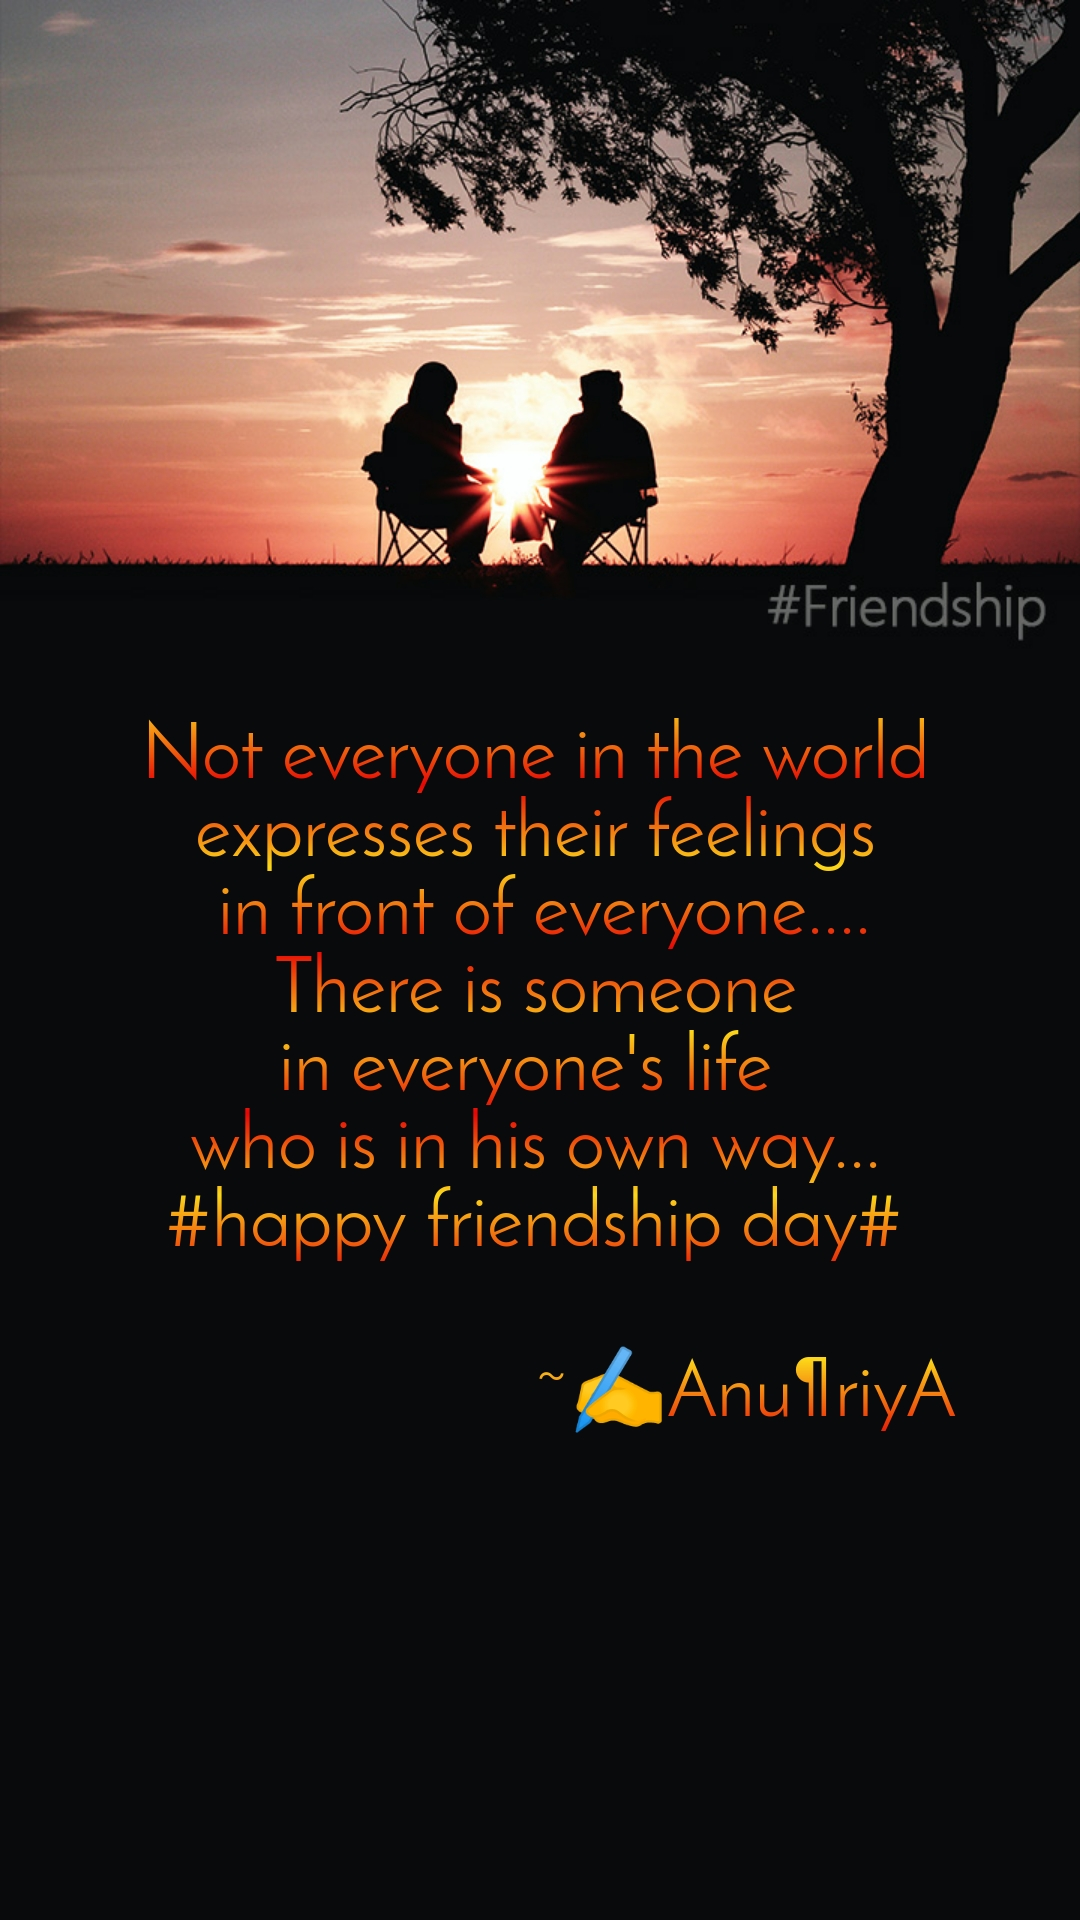 Not everyone in the world  expresses their feelings   in front of everyone.... There is someone in everyone's life  who is in his own way... #happy friendship day#                                            ~✍️Anu¶riyA